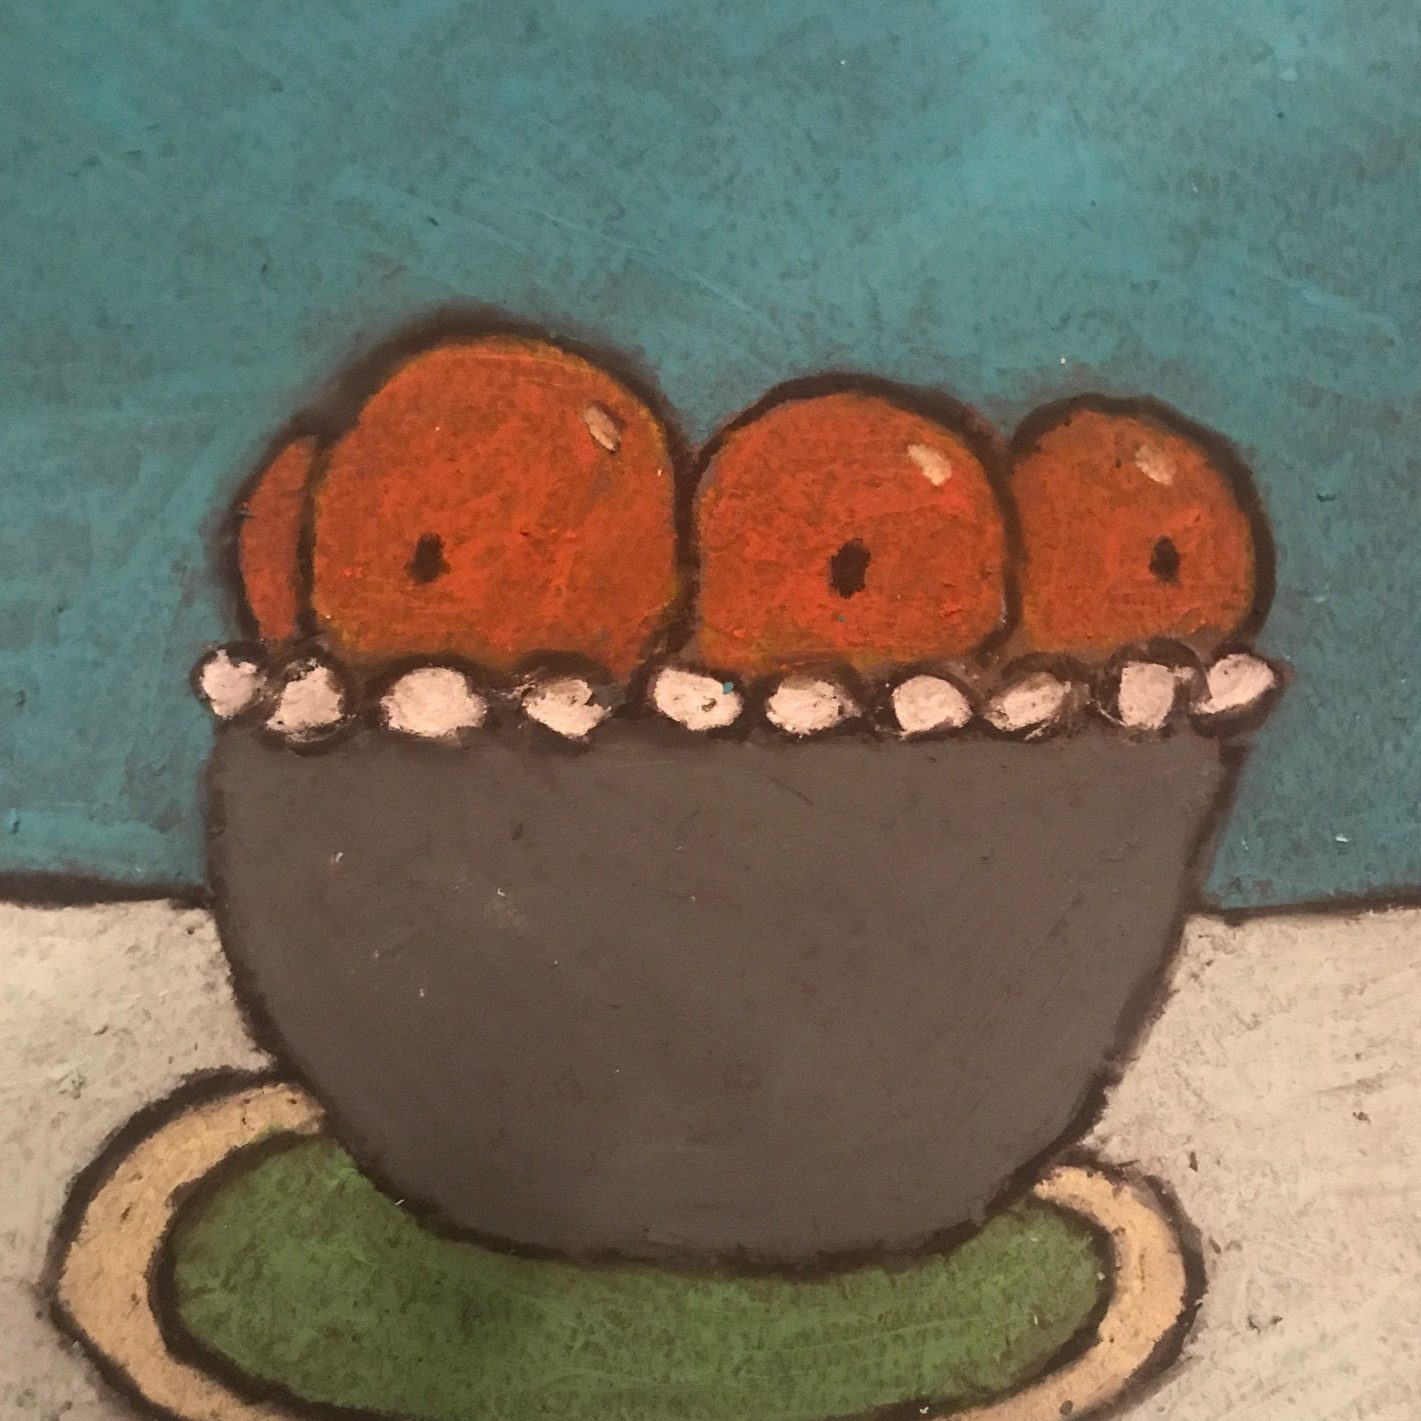 Oil pasel drawing of a gray fruit bowl on a table wtih a teal background